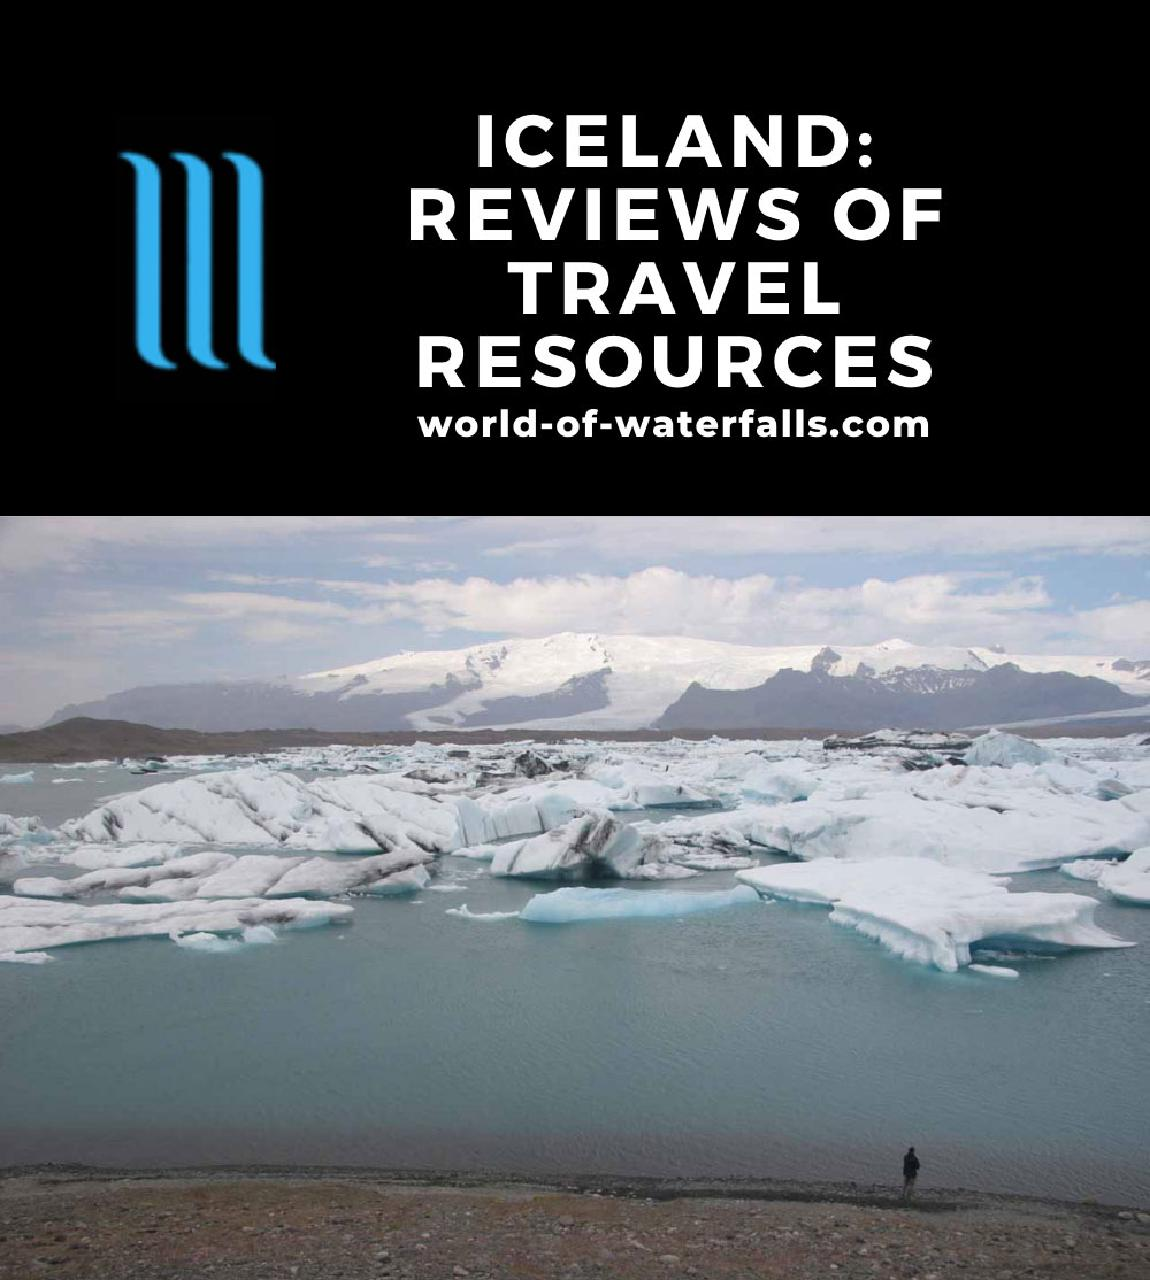 Iceland: Reviews of Travel Resources